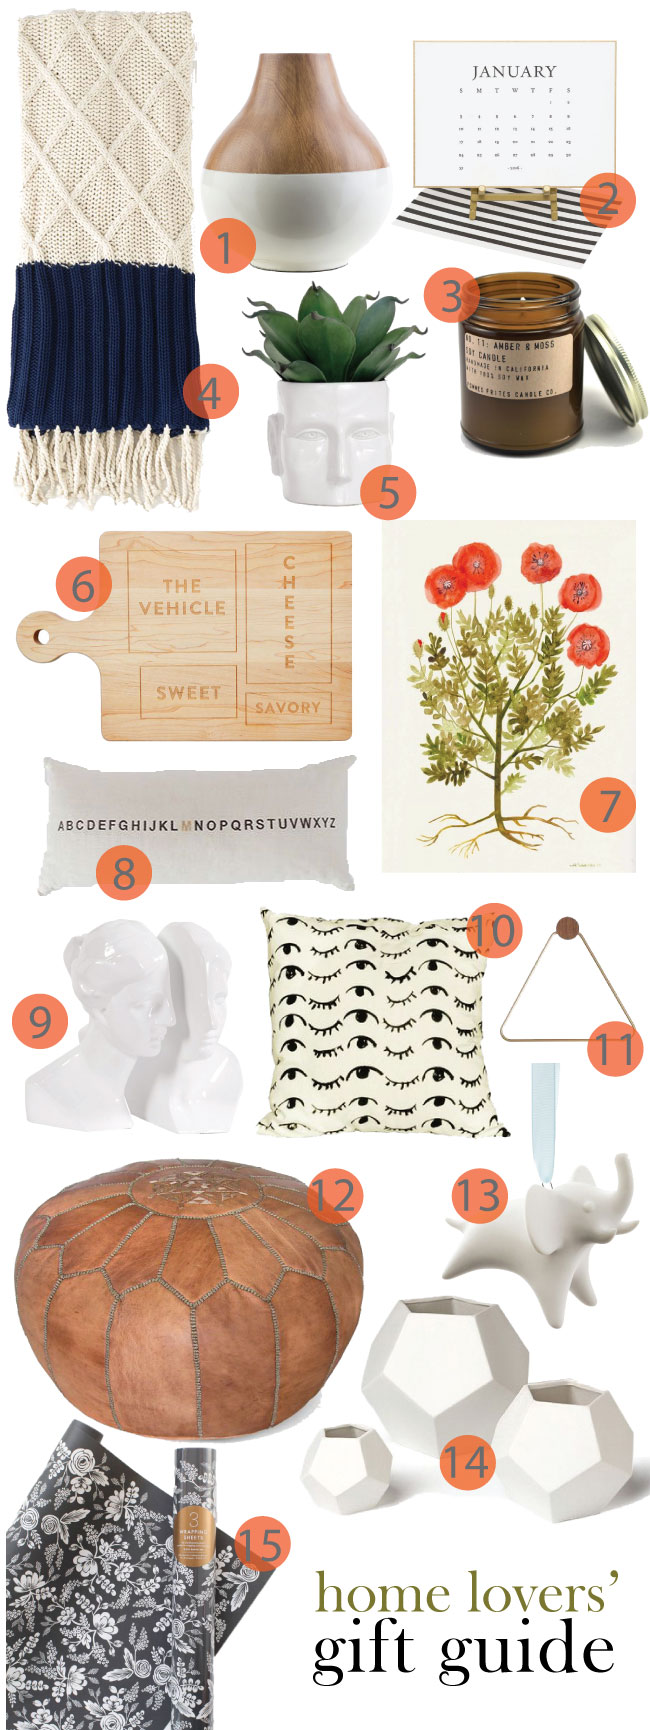 Home-Lovers-Gift-Guide